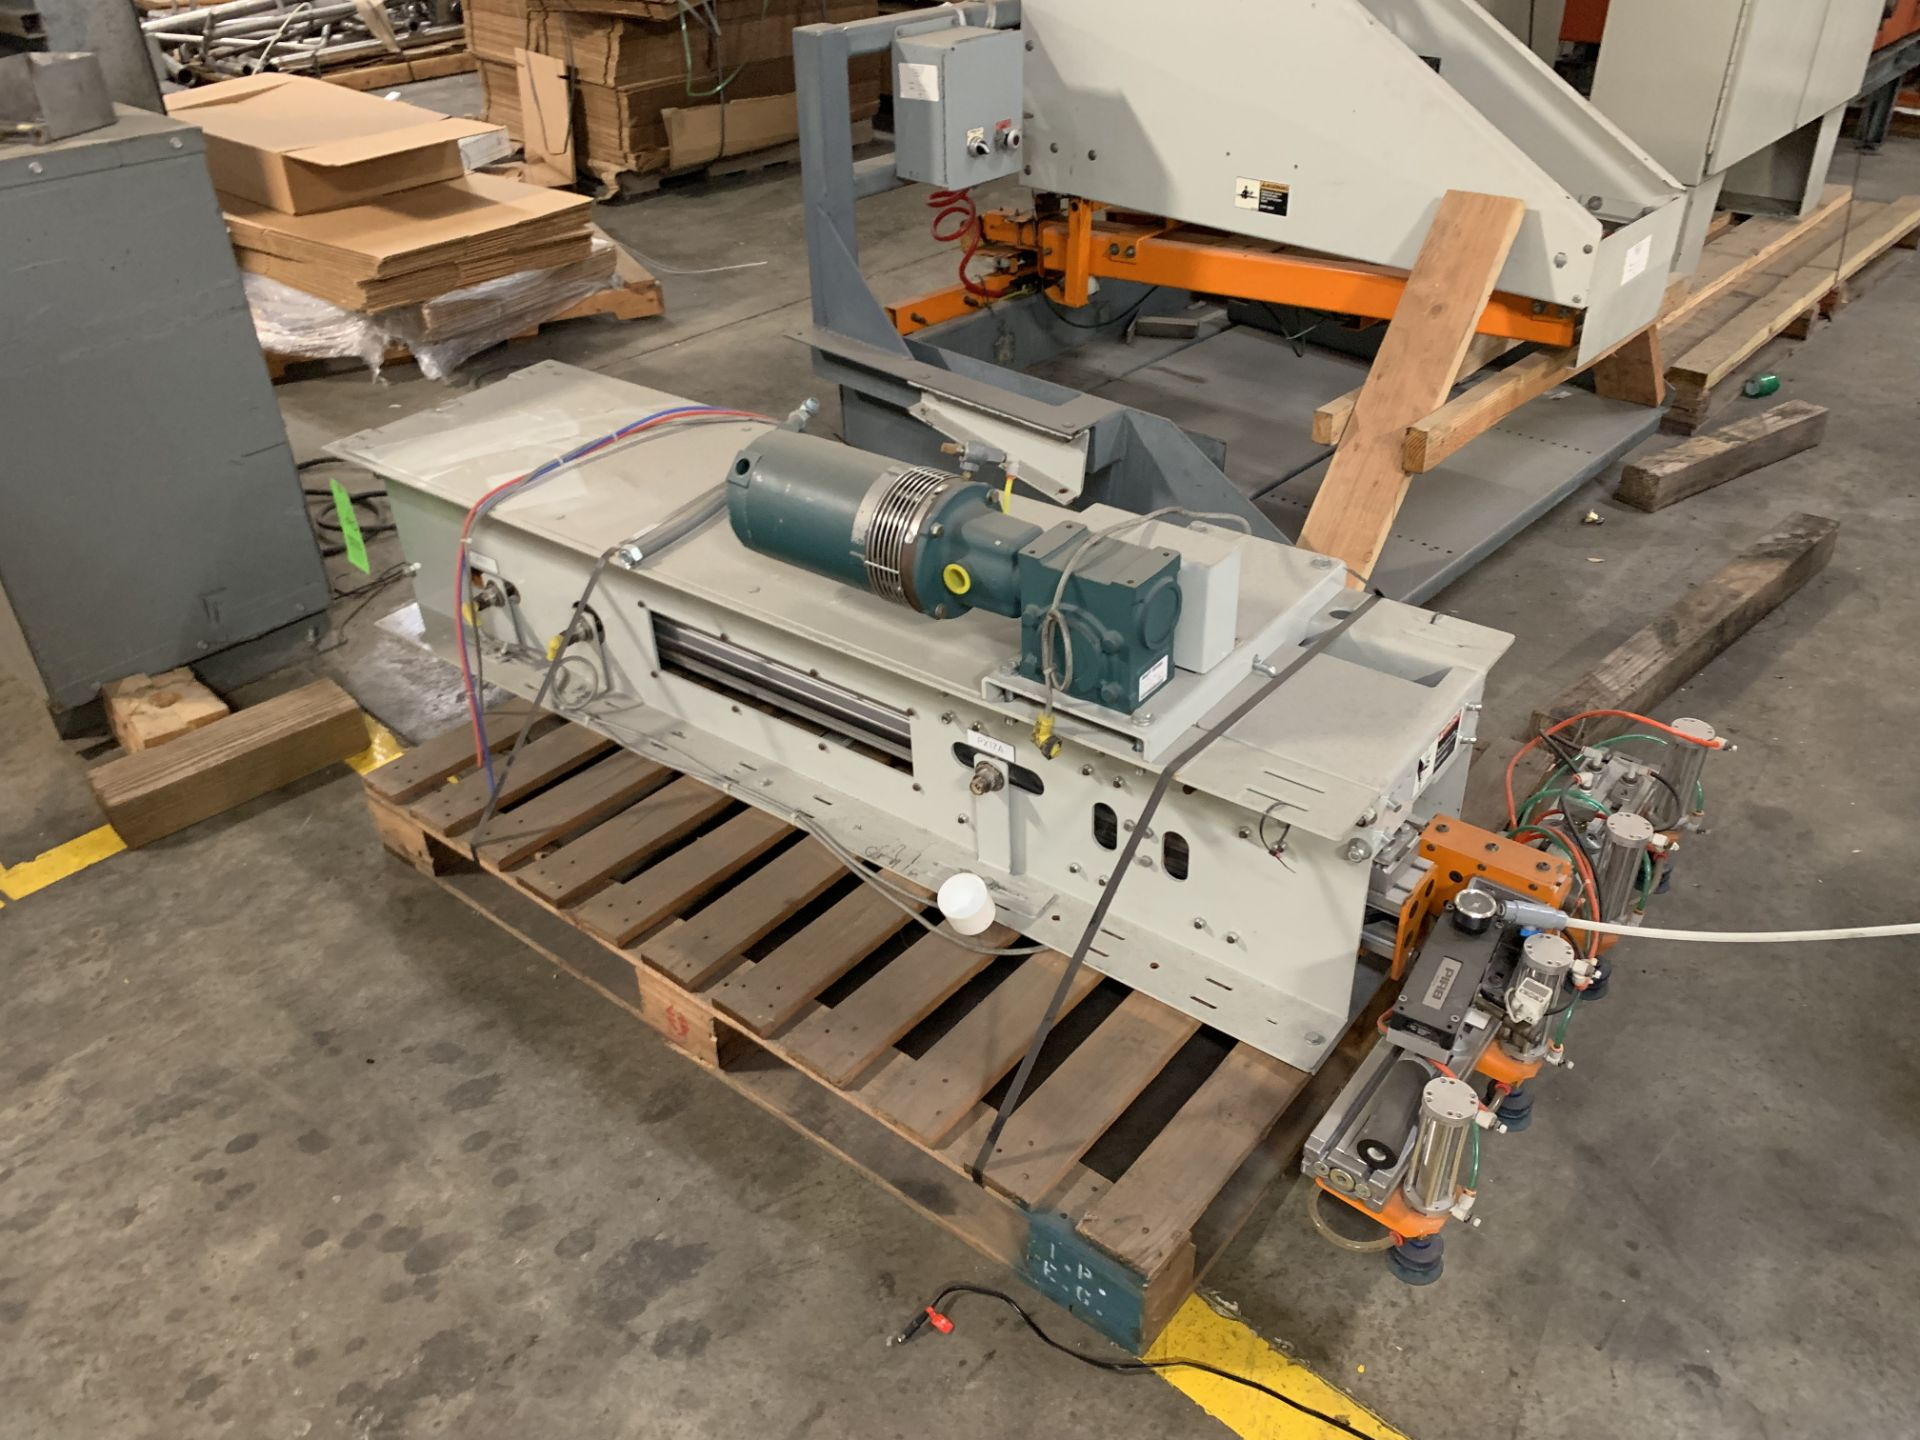 Lot 18 - Alvey Slip Sheet Inserter with Control Panel and Feeder